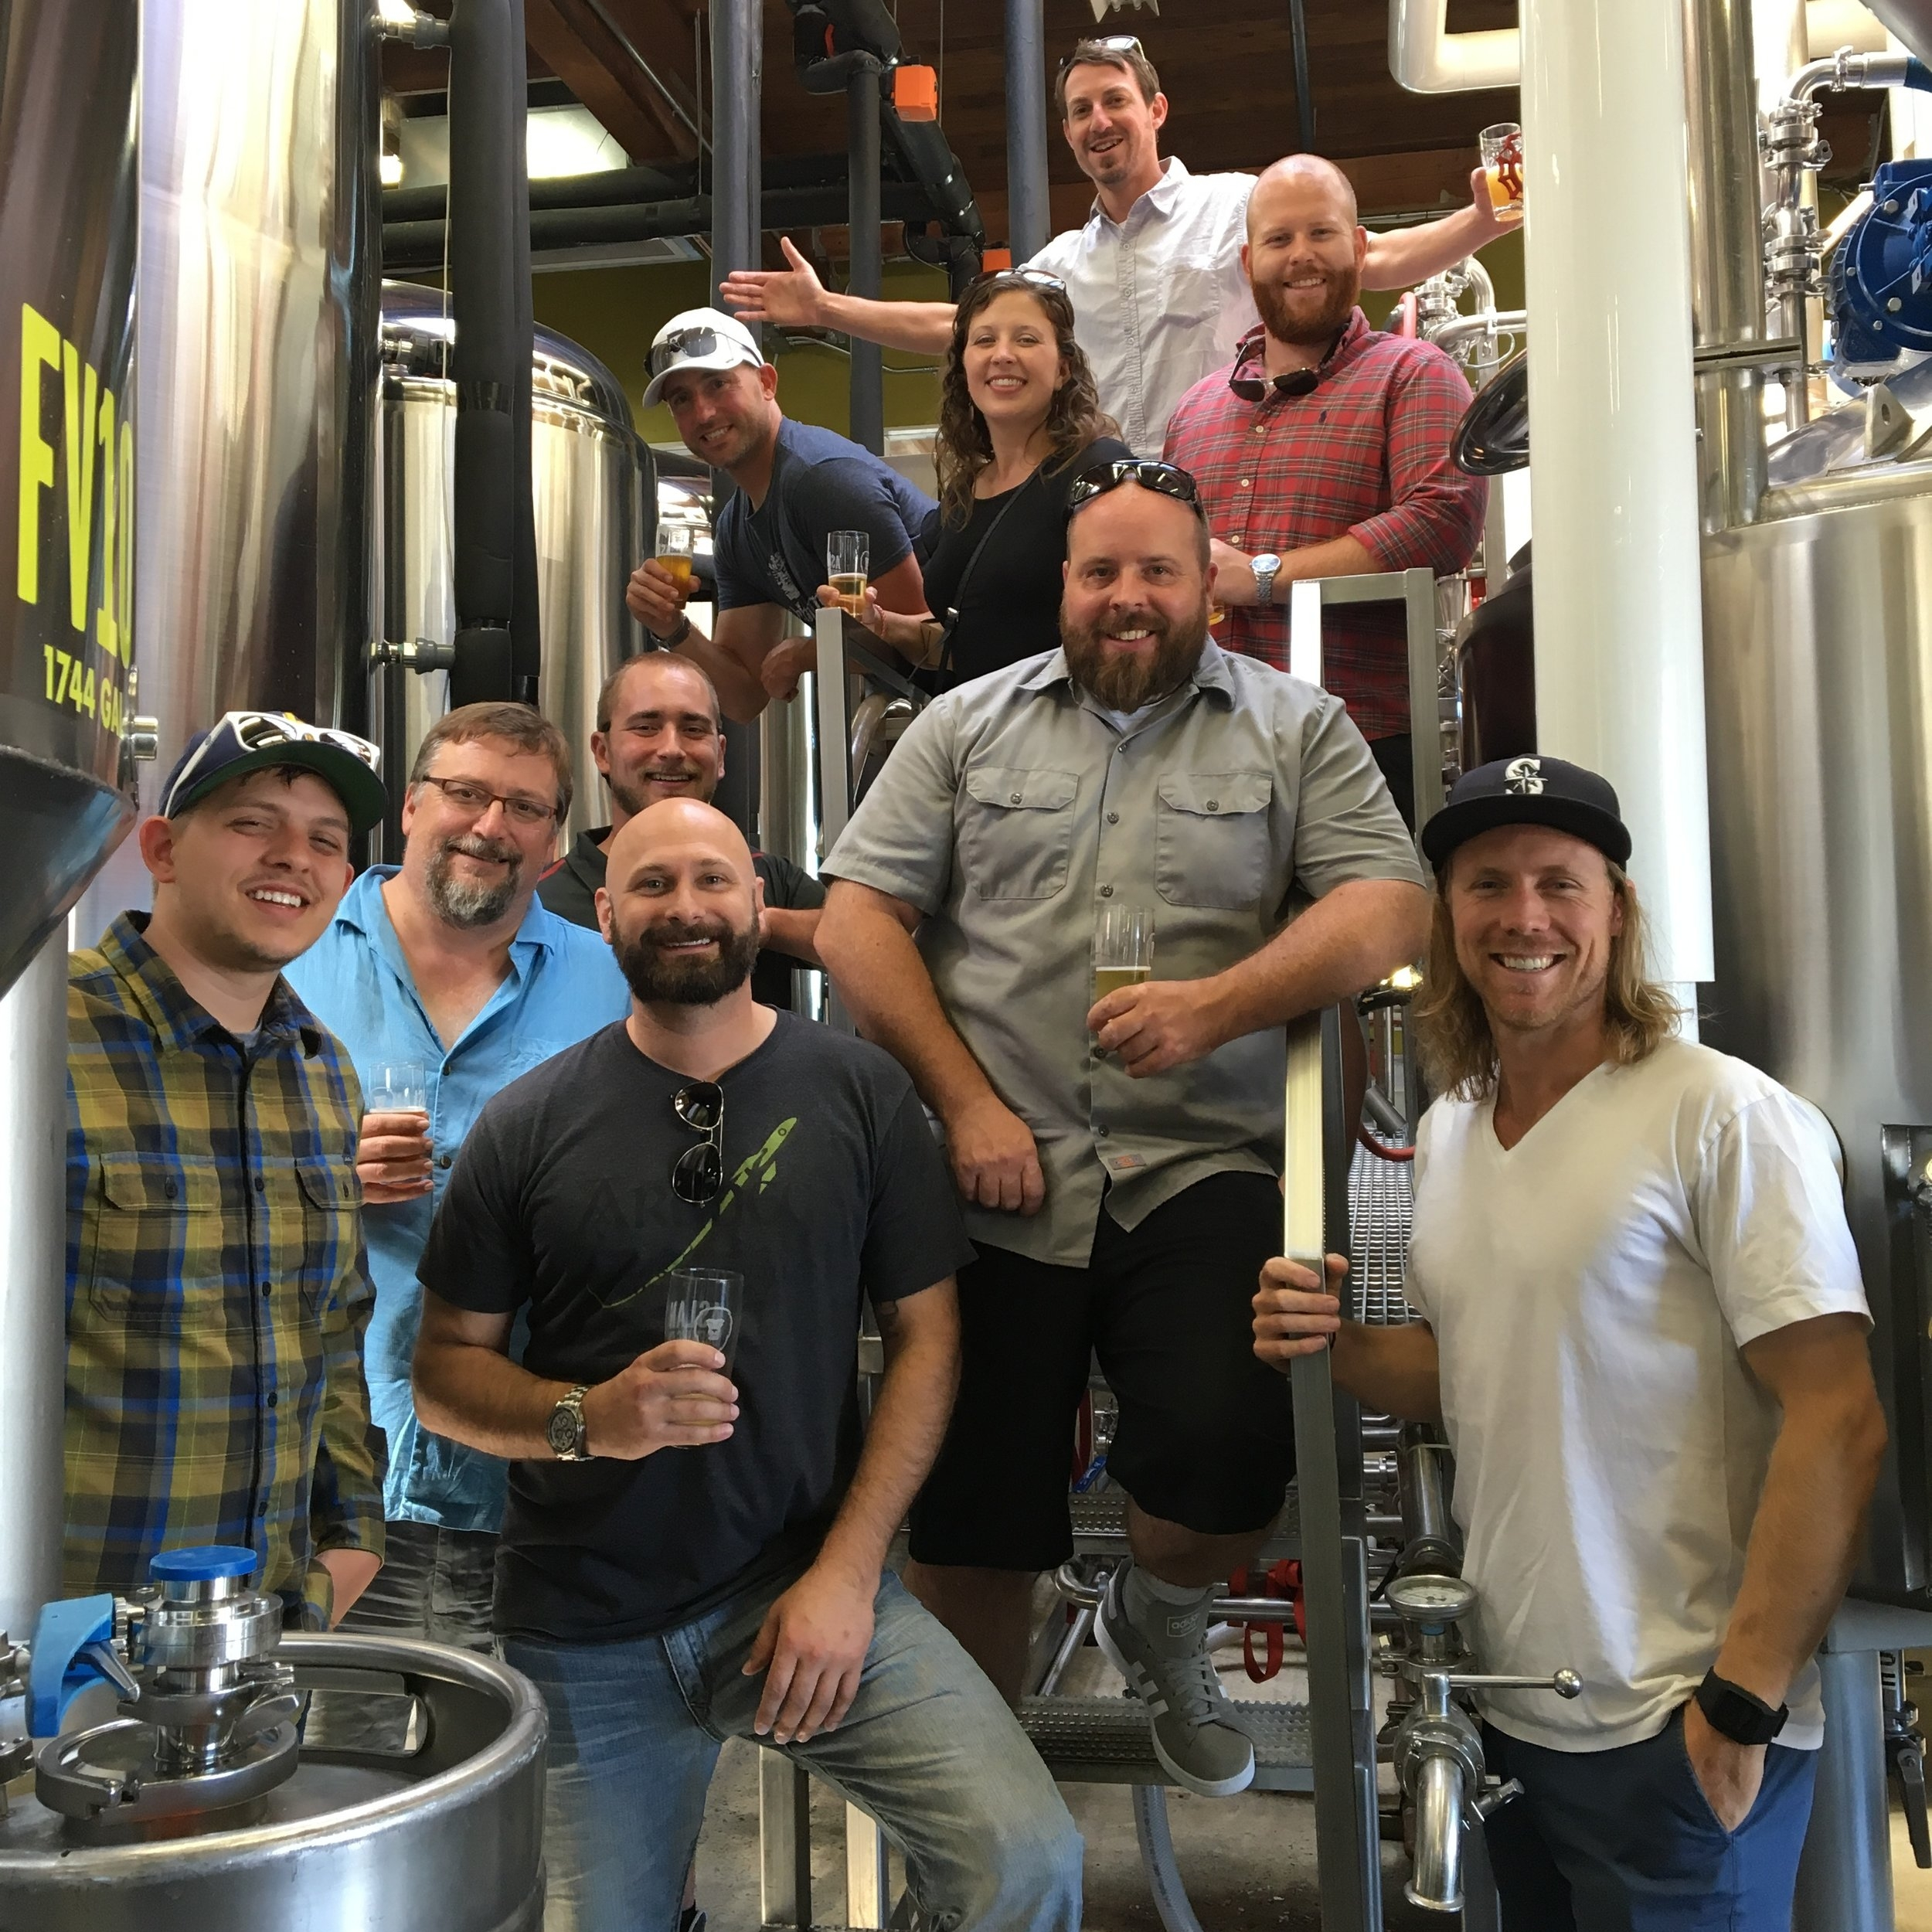 Members of the sales team visiting a local brewery